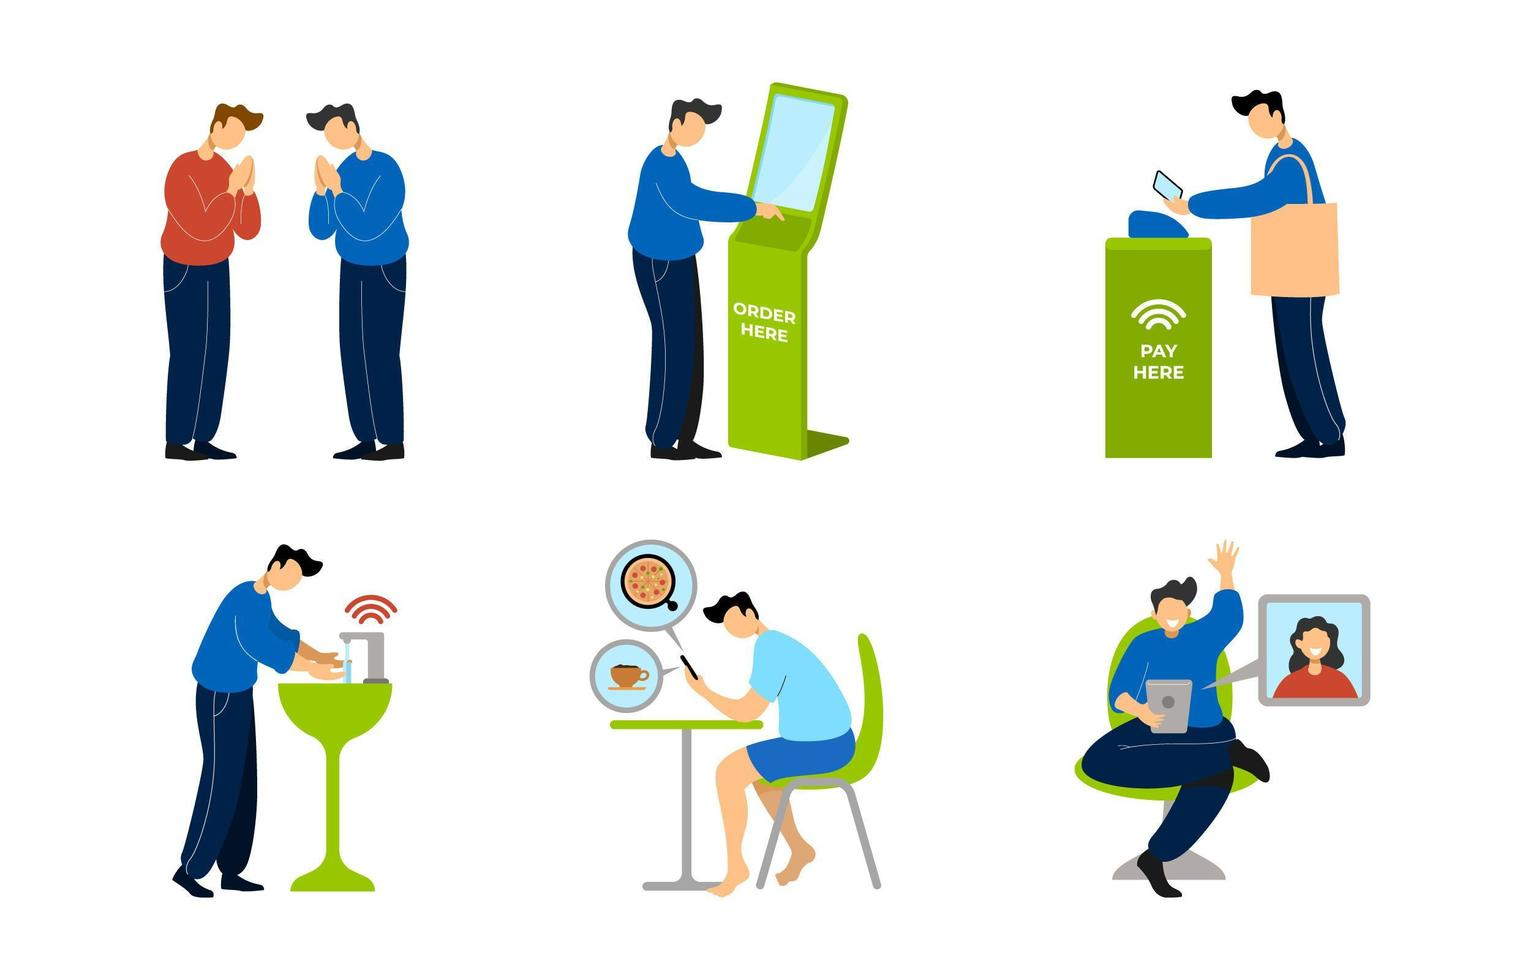 UNTACT or Contactless Technology vector